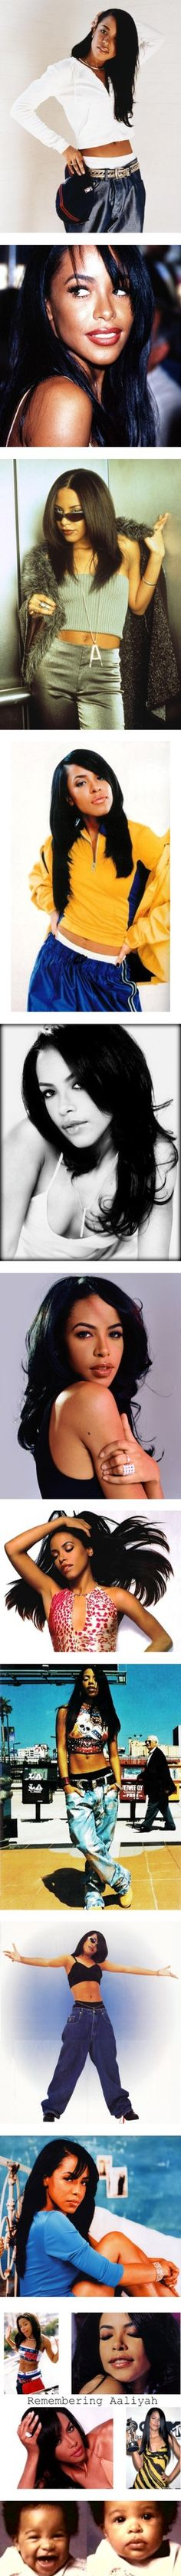 """""""Aaliyah Dana Haughton"""" by rio-anon ❤ liked on Polyvore"""